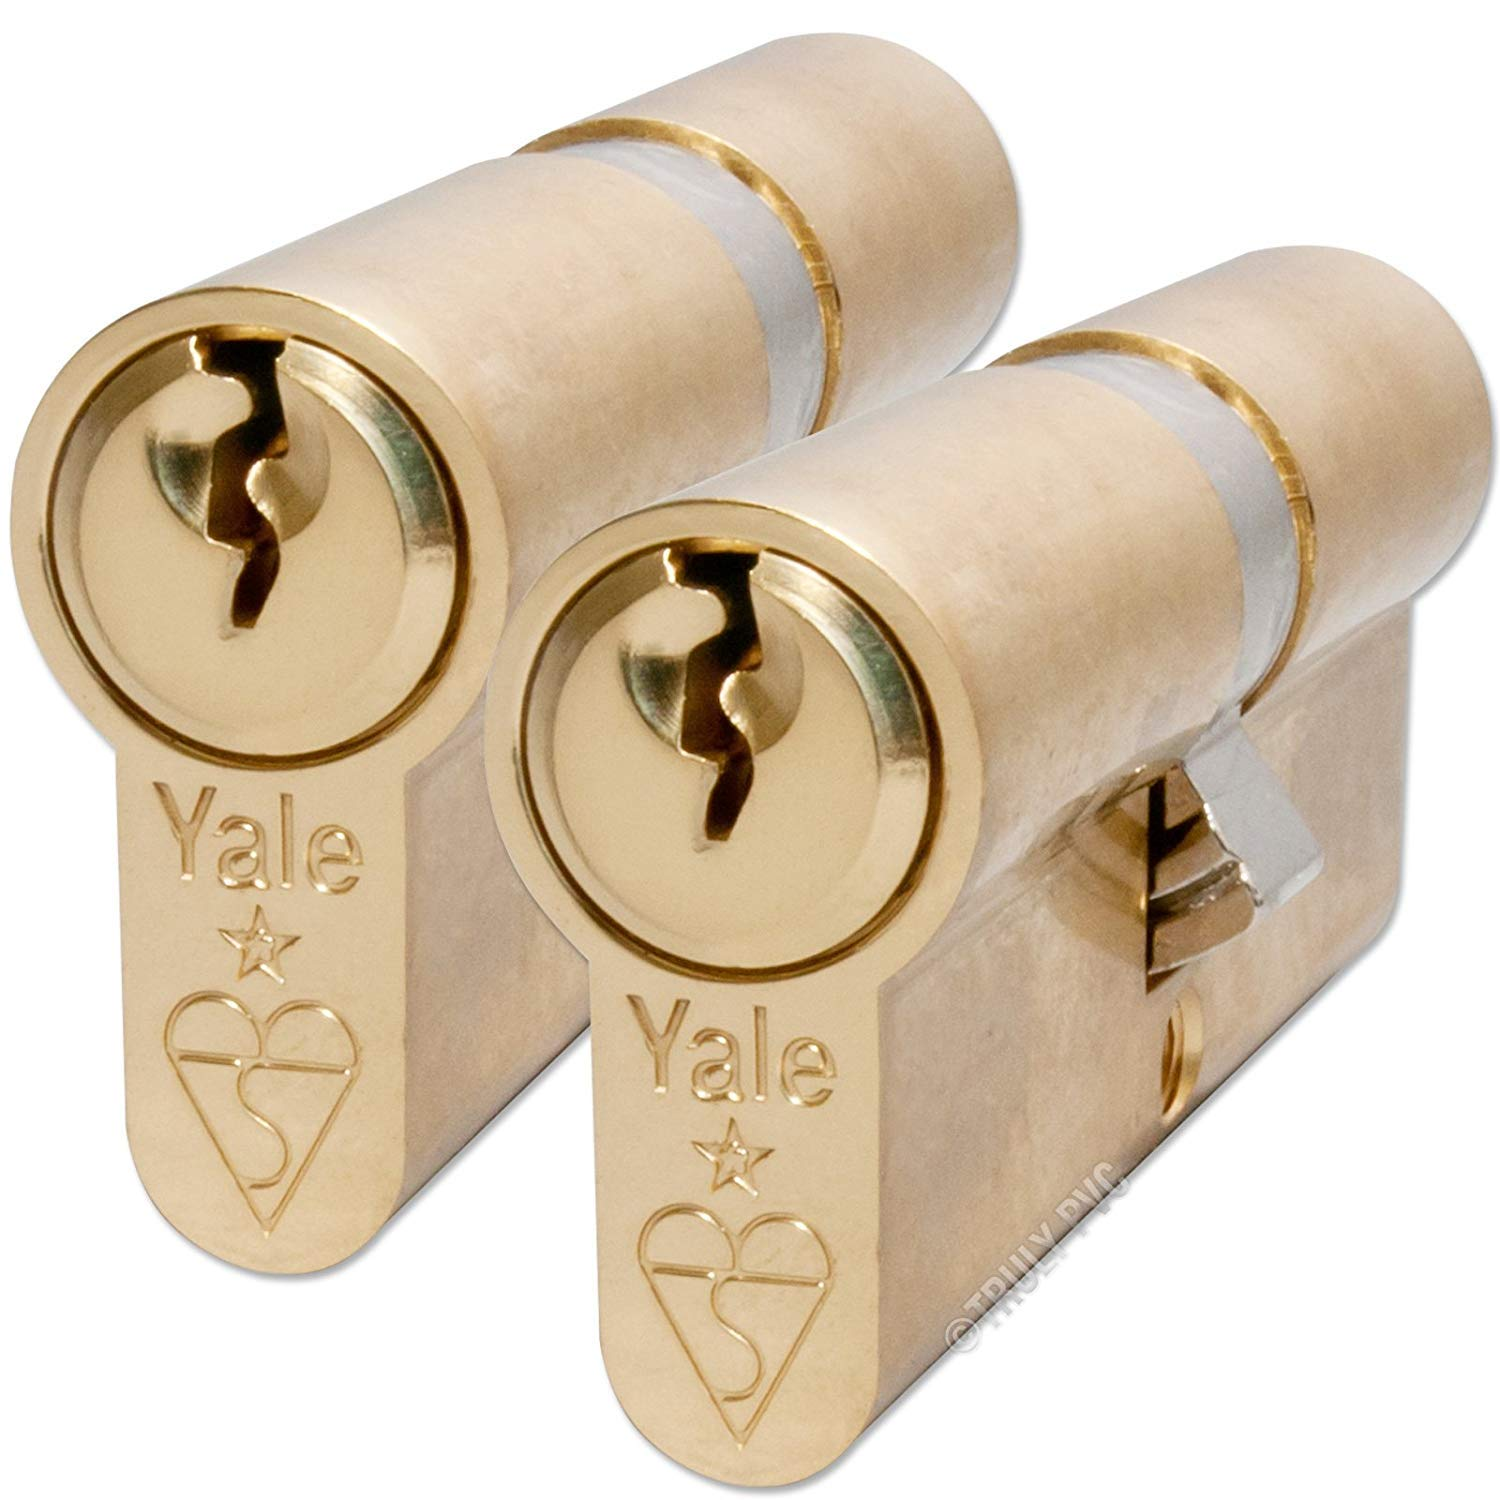 2 x Euro Door Cylinder Barrel Lock UPVC Aluminium Wood Doors 80mm Keyed Alike